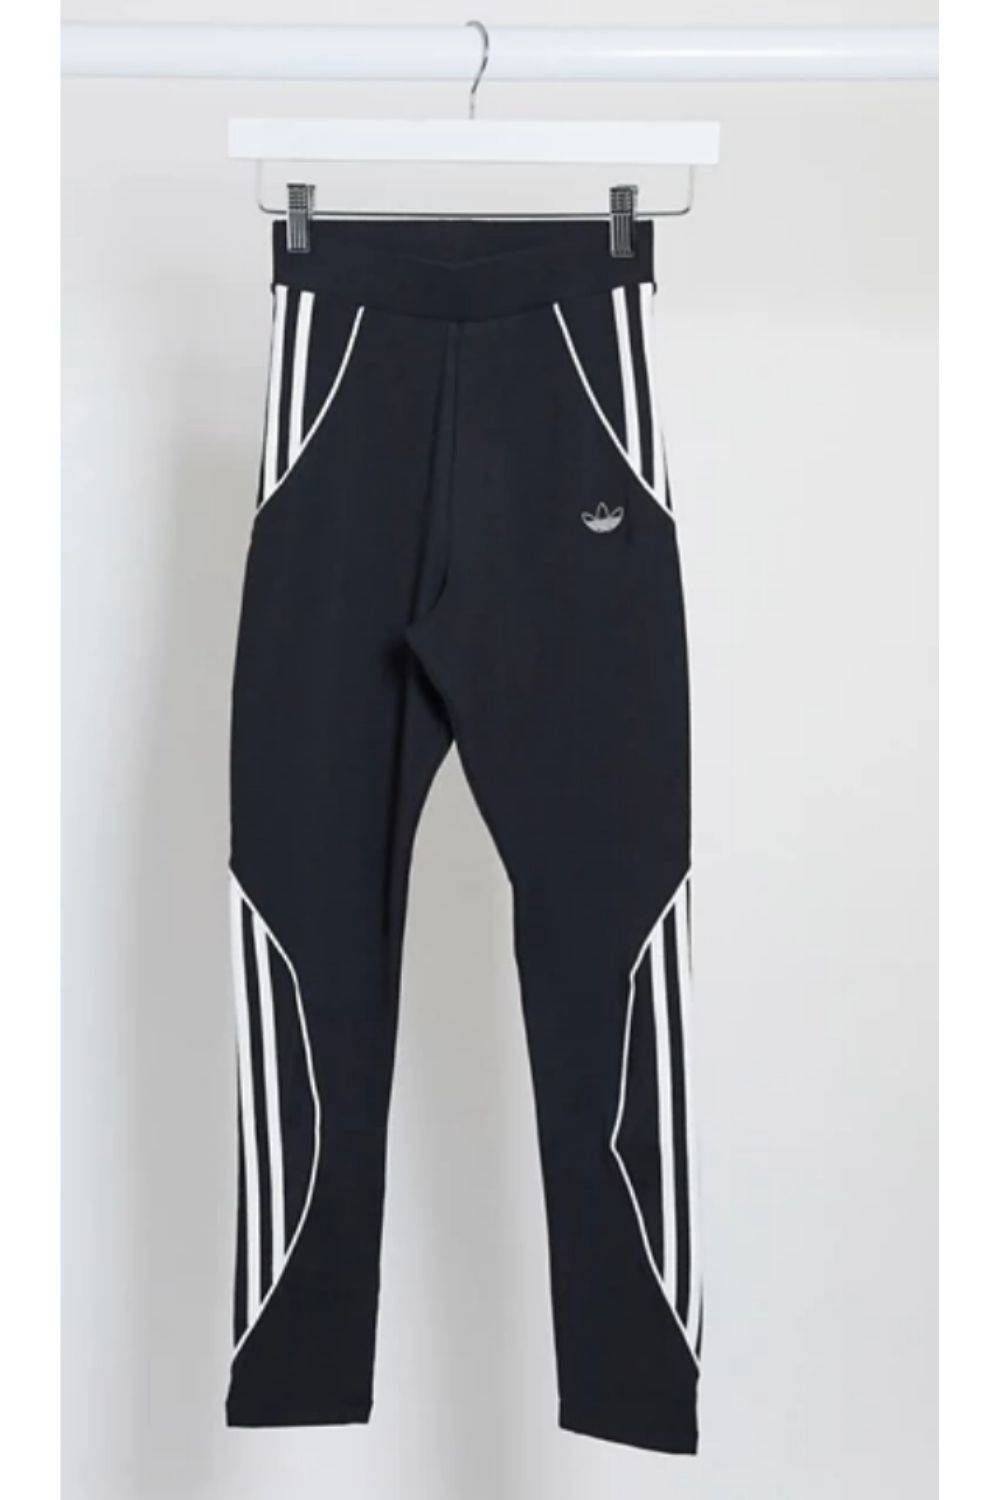 Leggings de Adidas